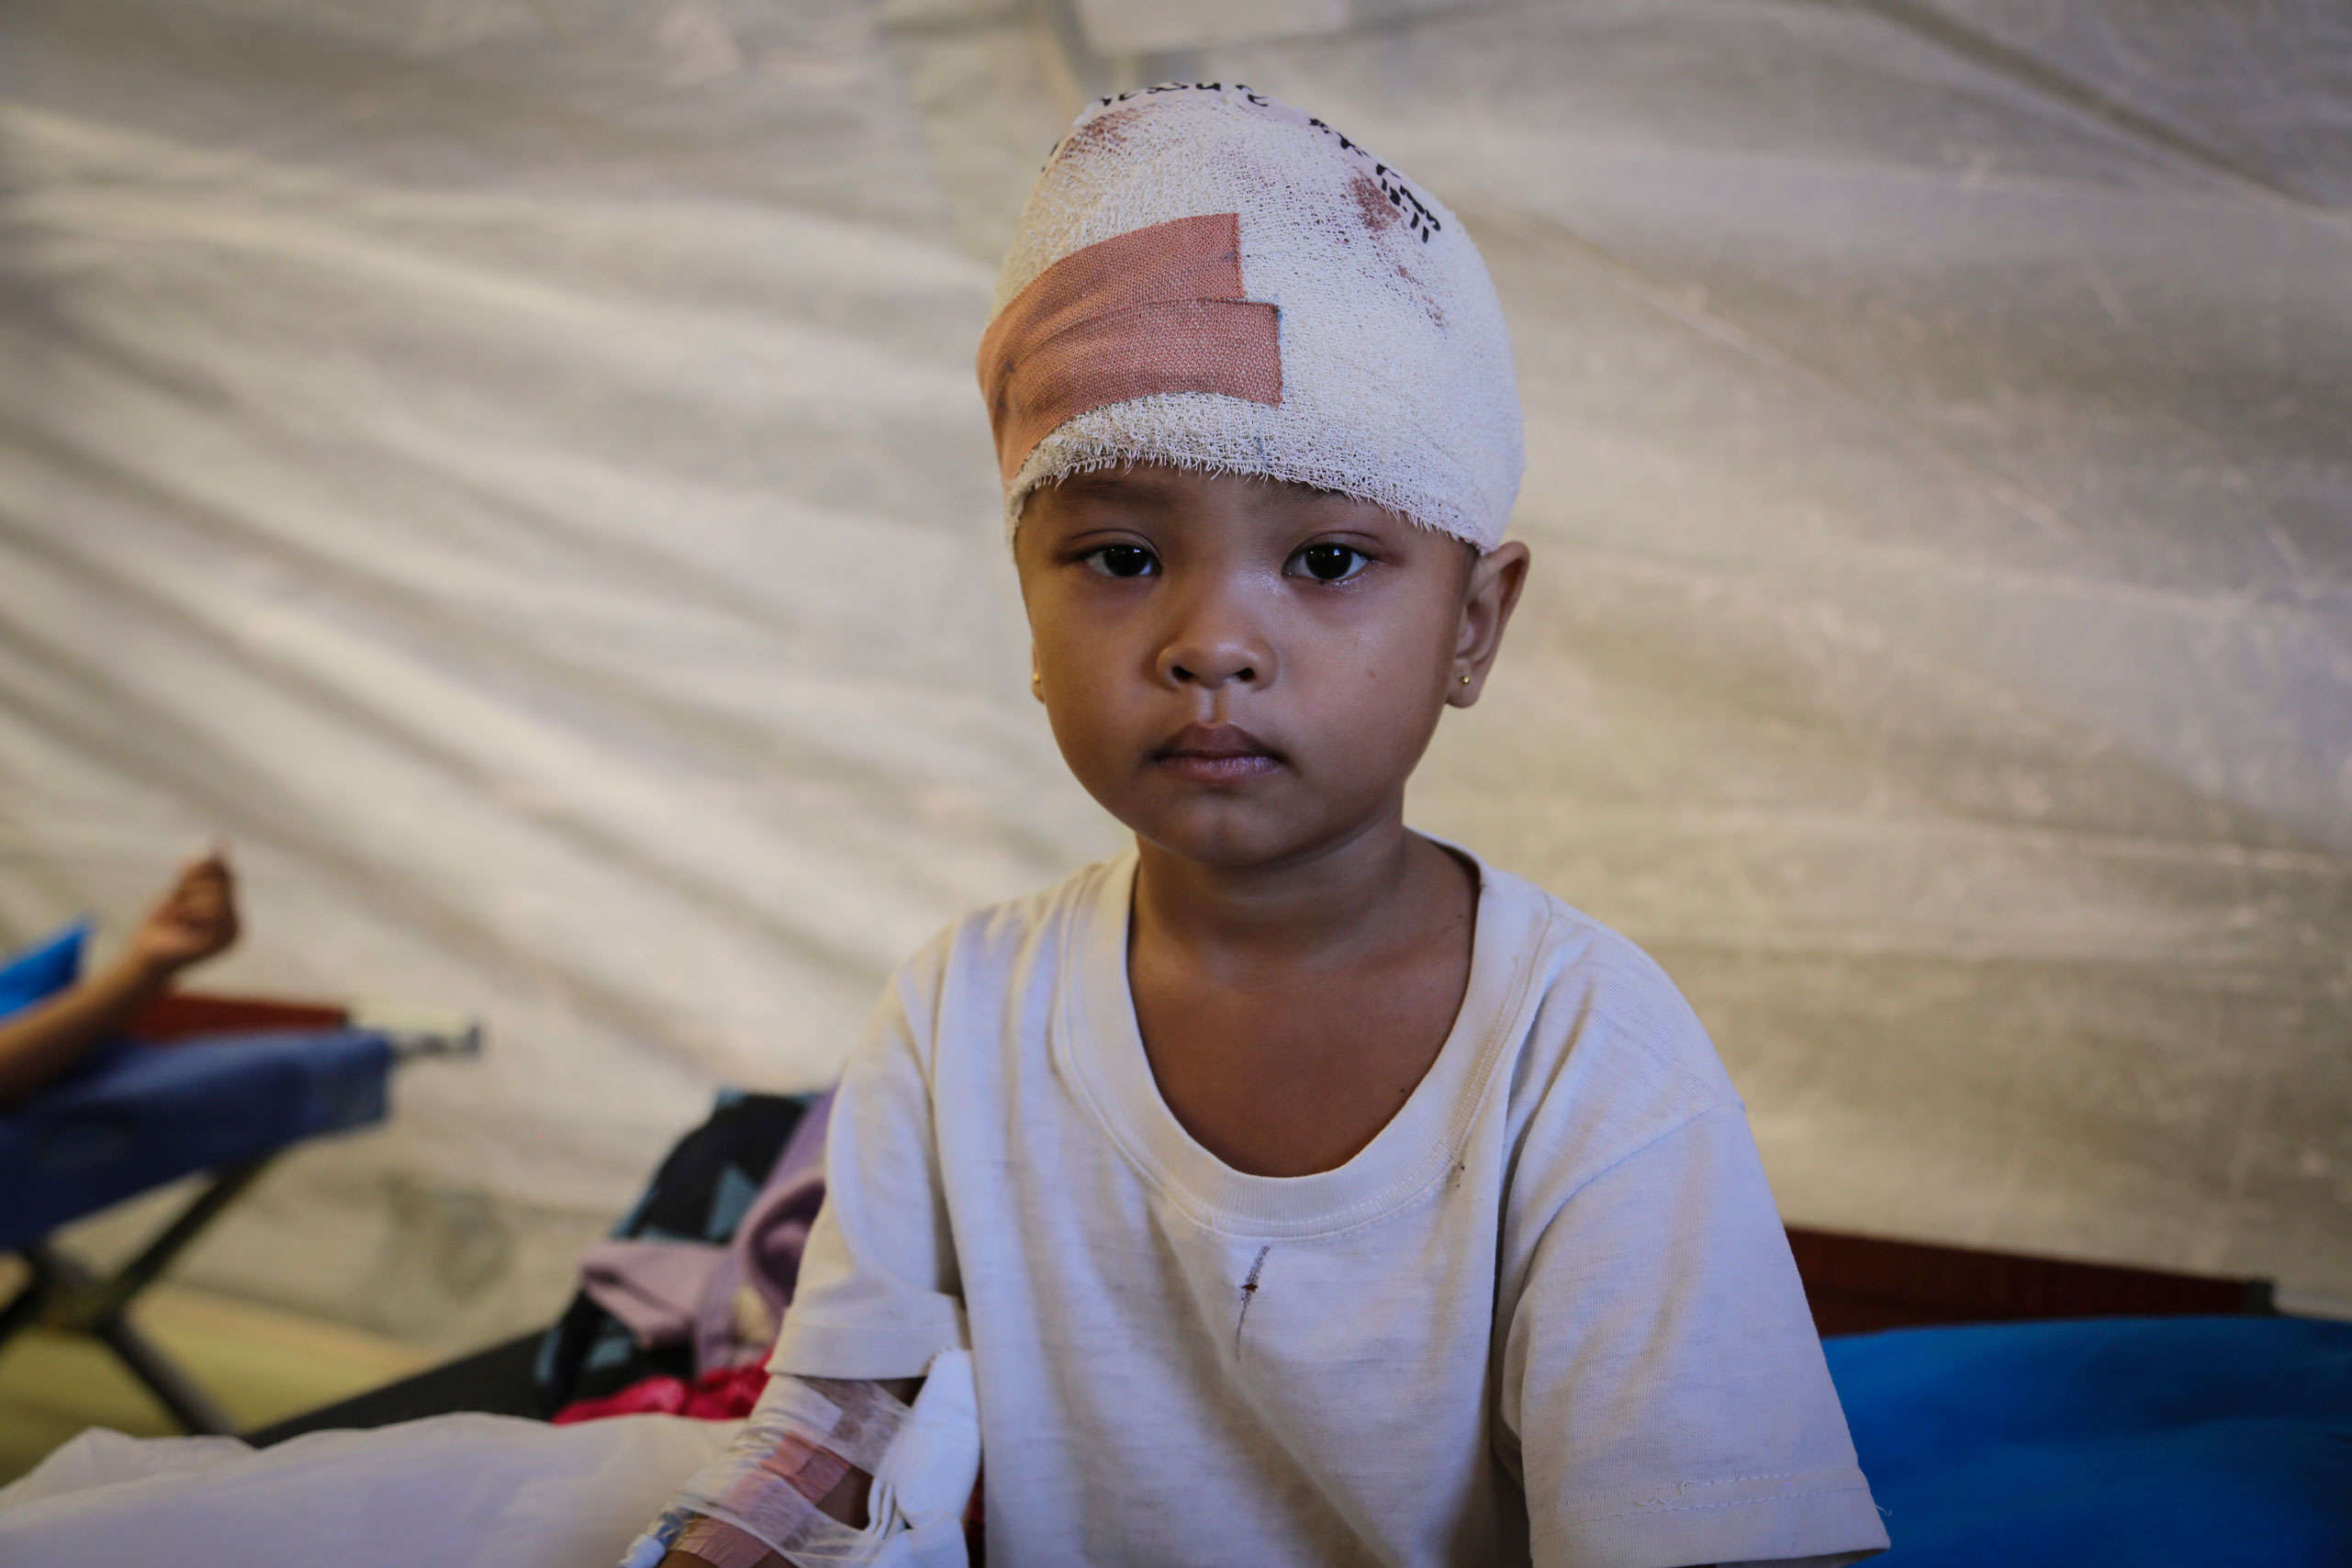 Alisa, aged 4, waits with her mother for her second operation to fix her skull after a piece of wood became lodged there during typhoon Haiyan. Australian and British doctors performed the surgery.